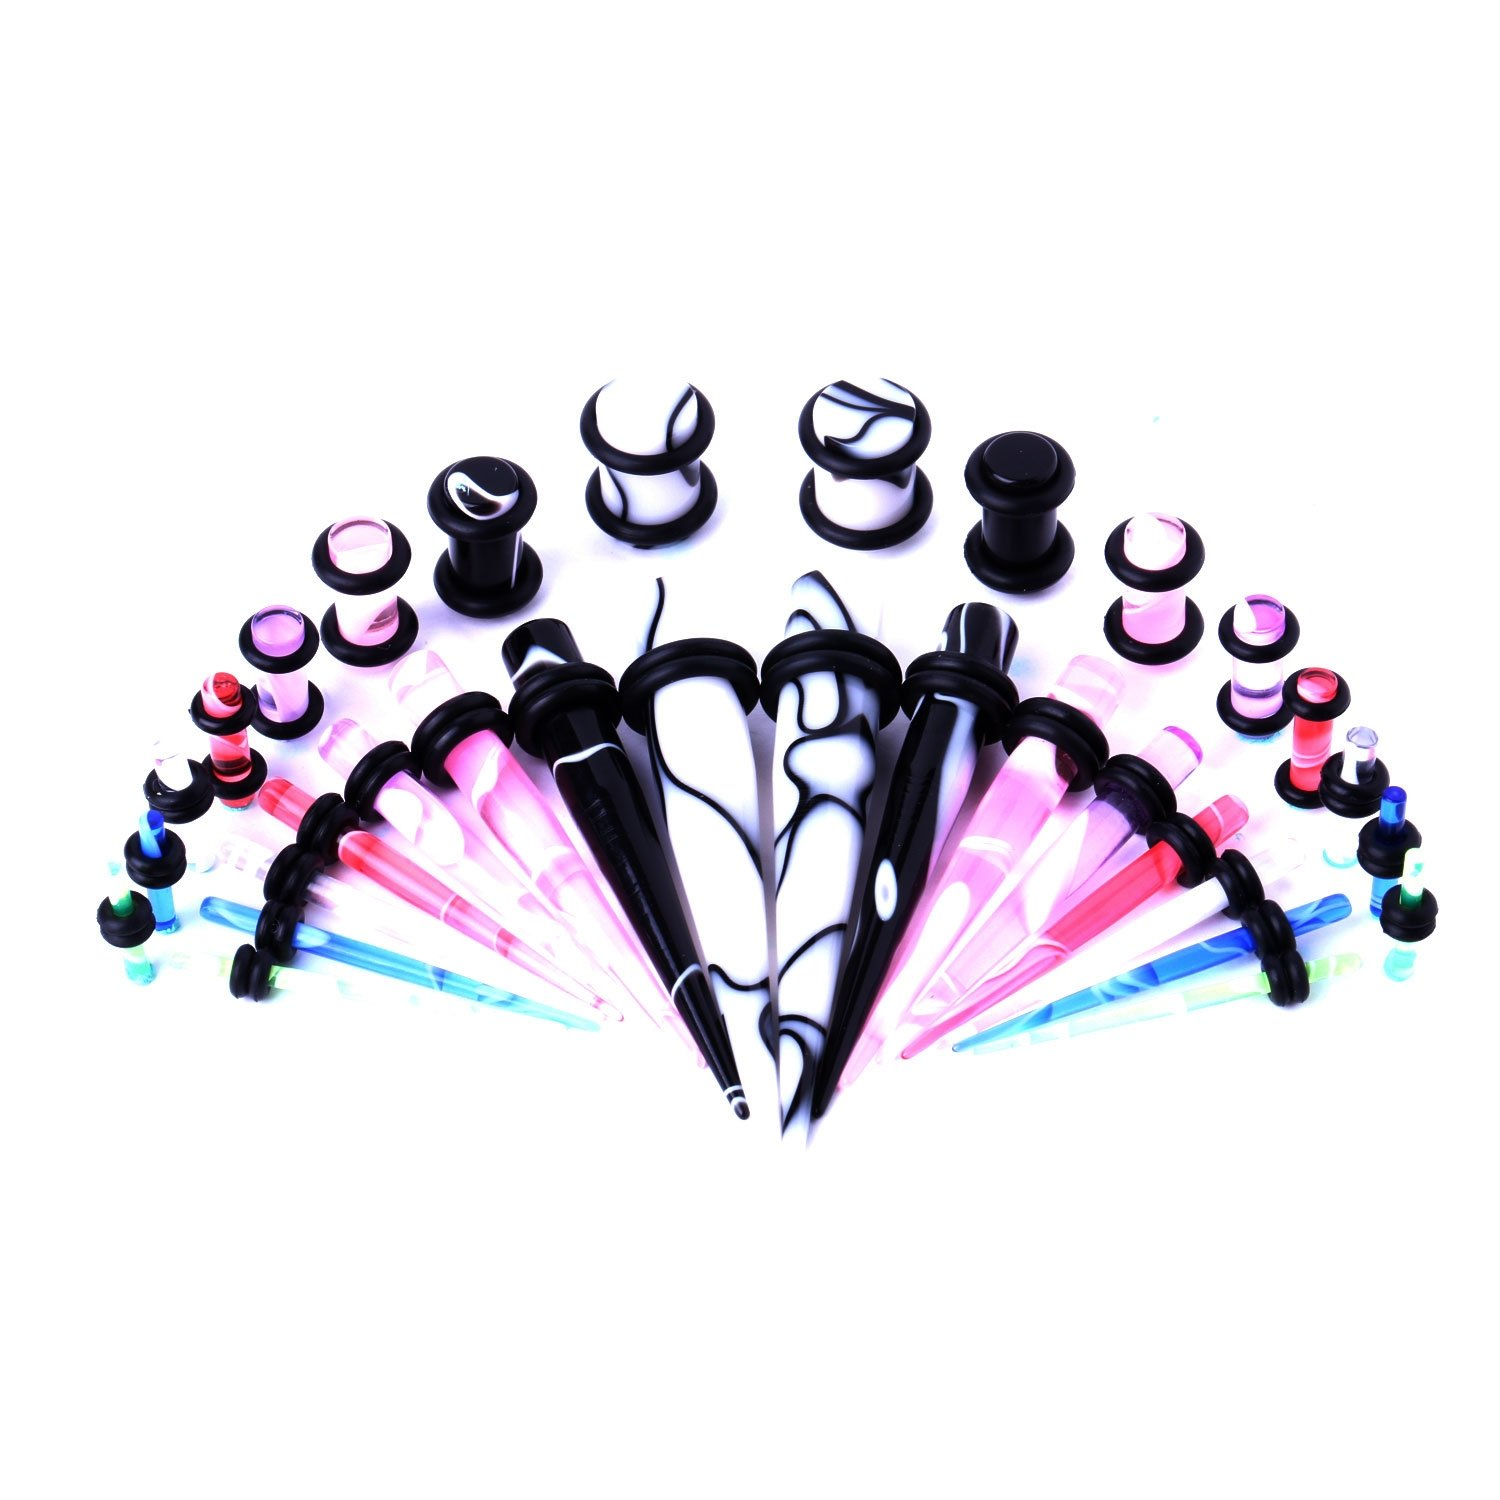 BodyJ4You Tapers with Plugs 32 Pieces Taper Kit Acrylic Marble 14G-0G Stretching Kit - 16 Pairs